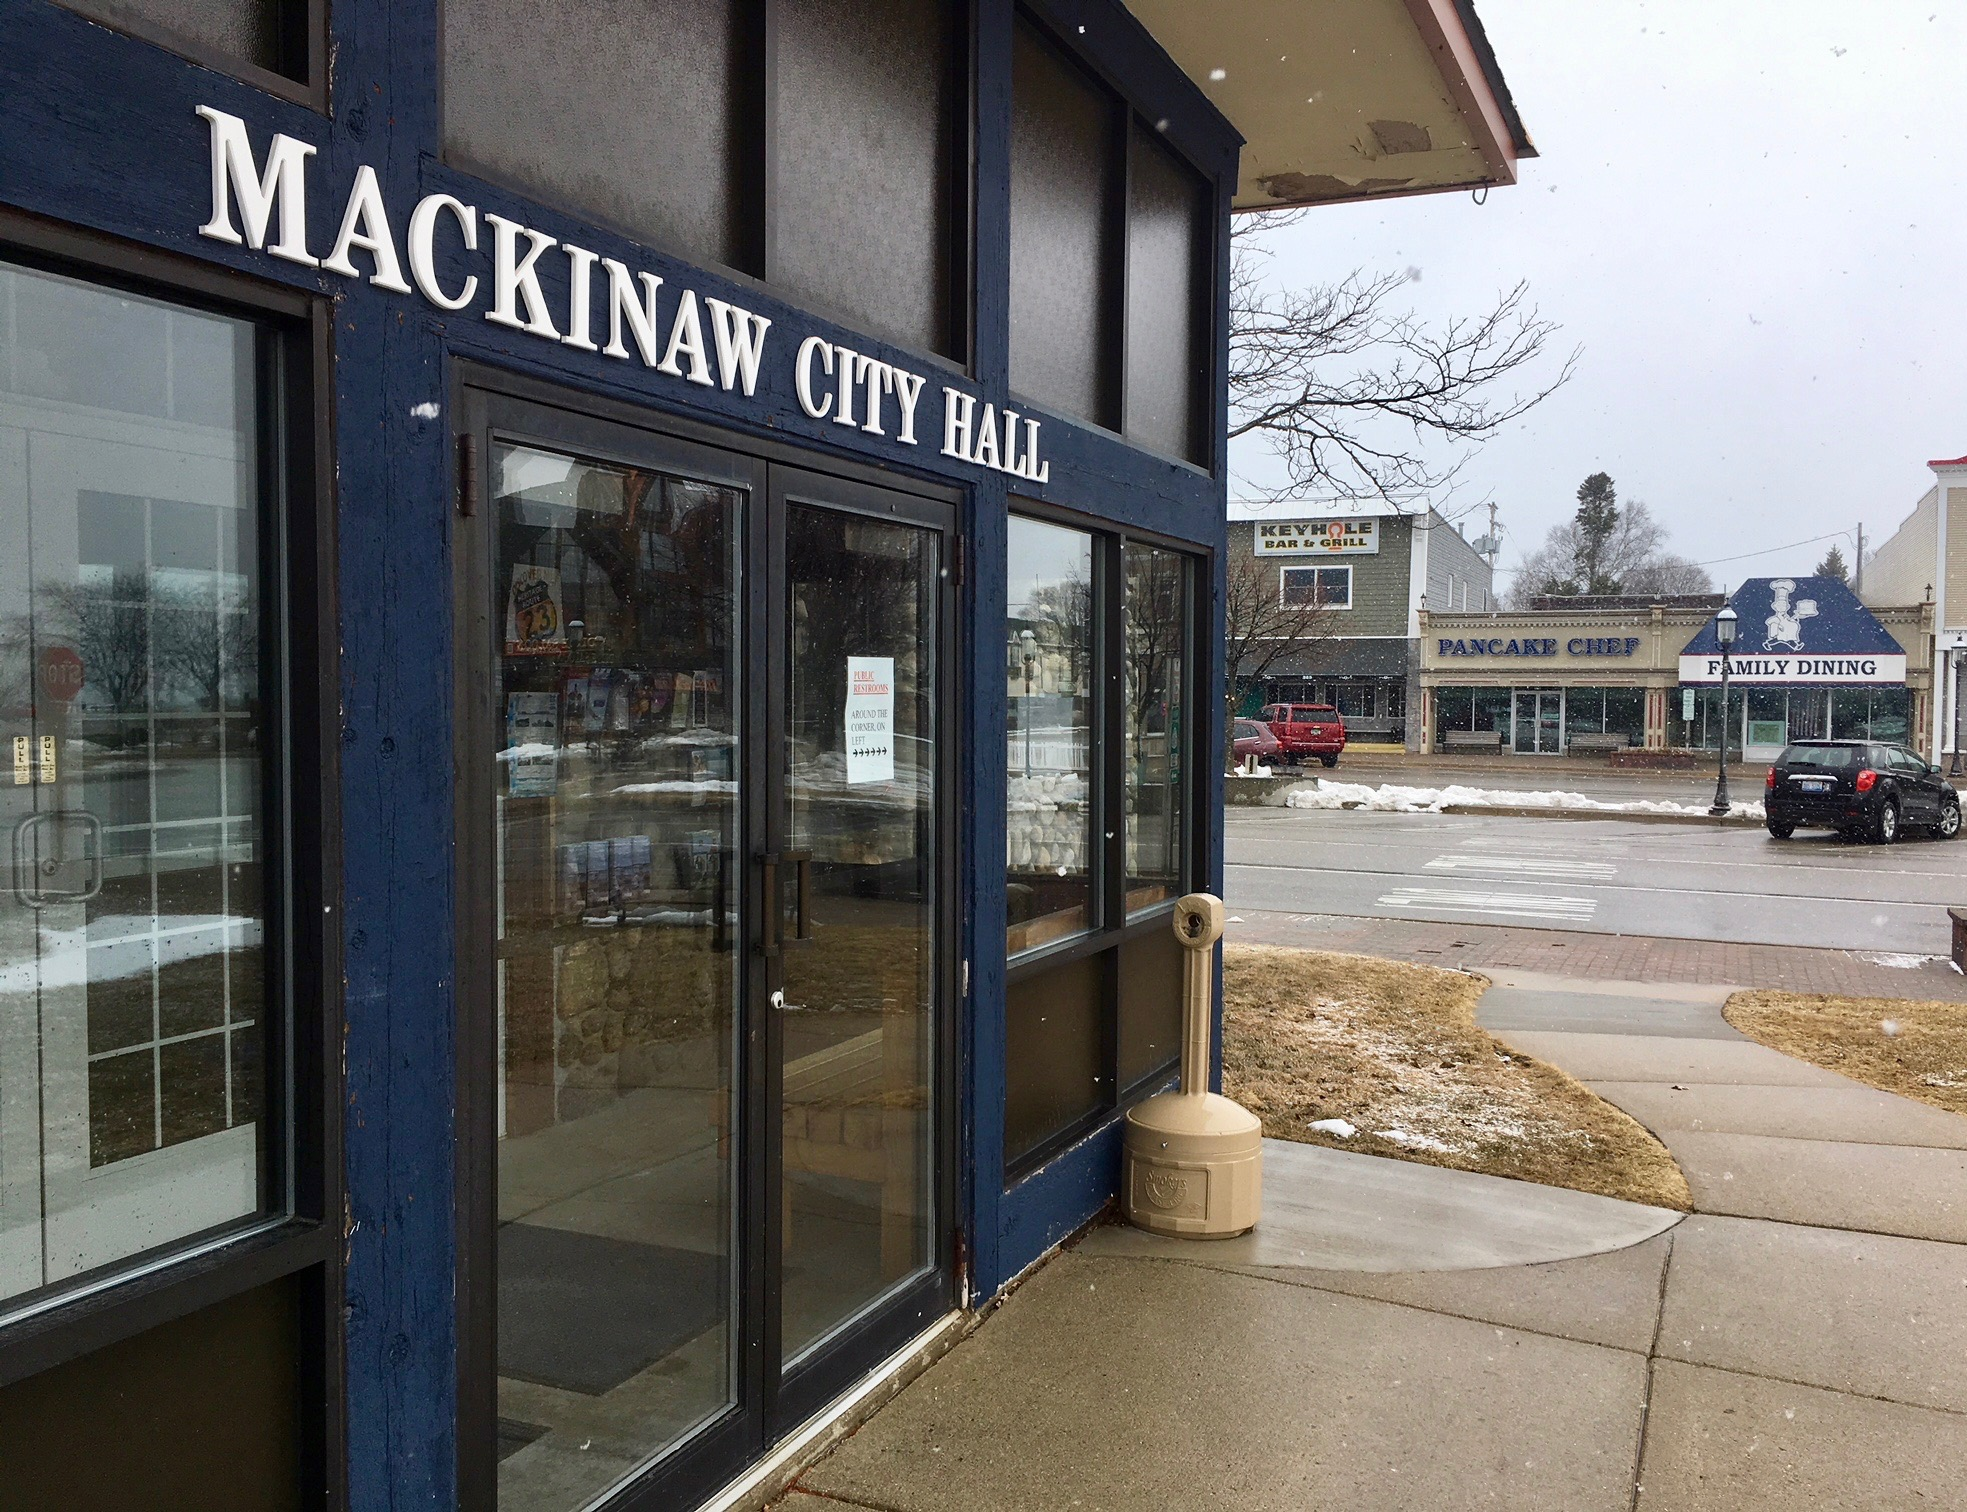 Mackinaw City Hall